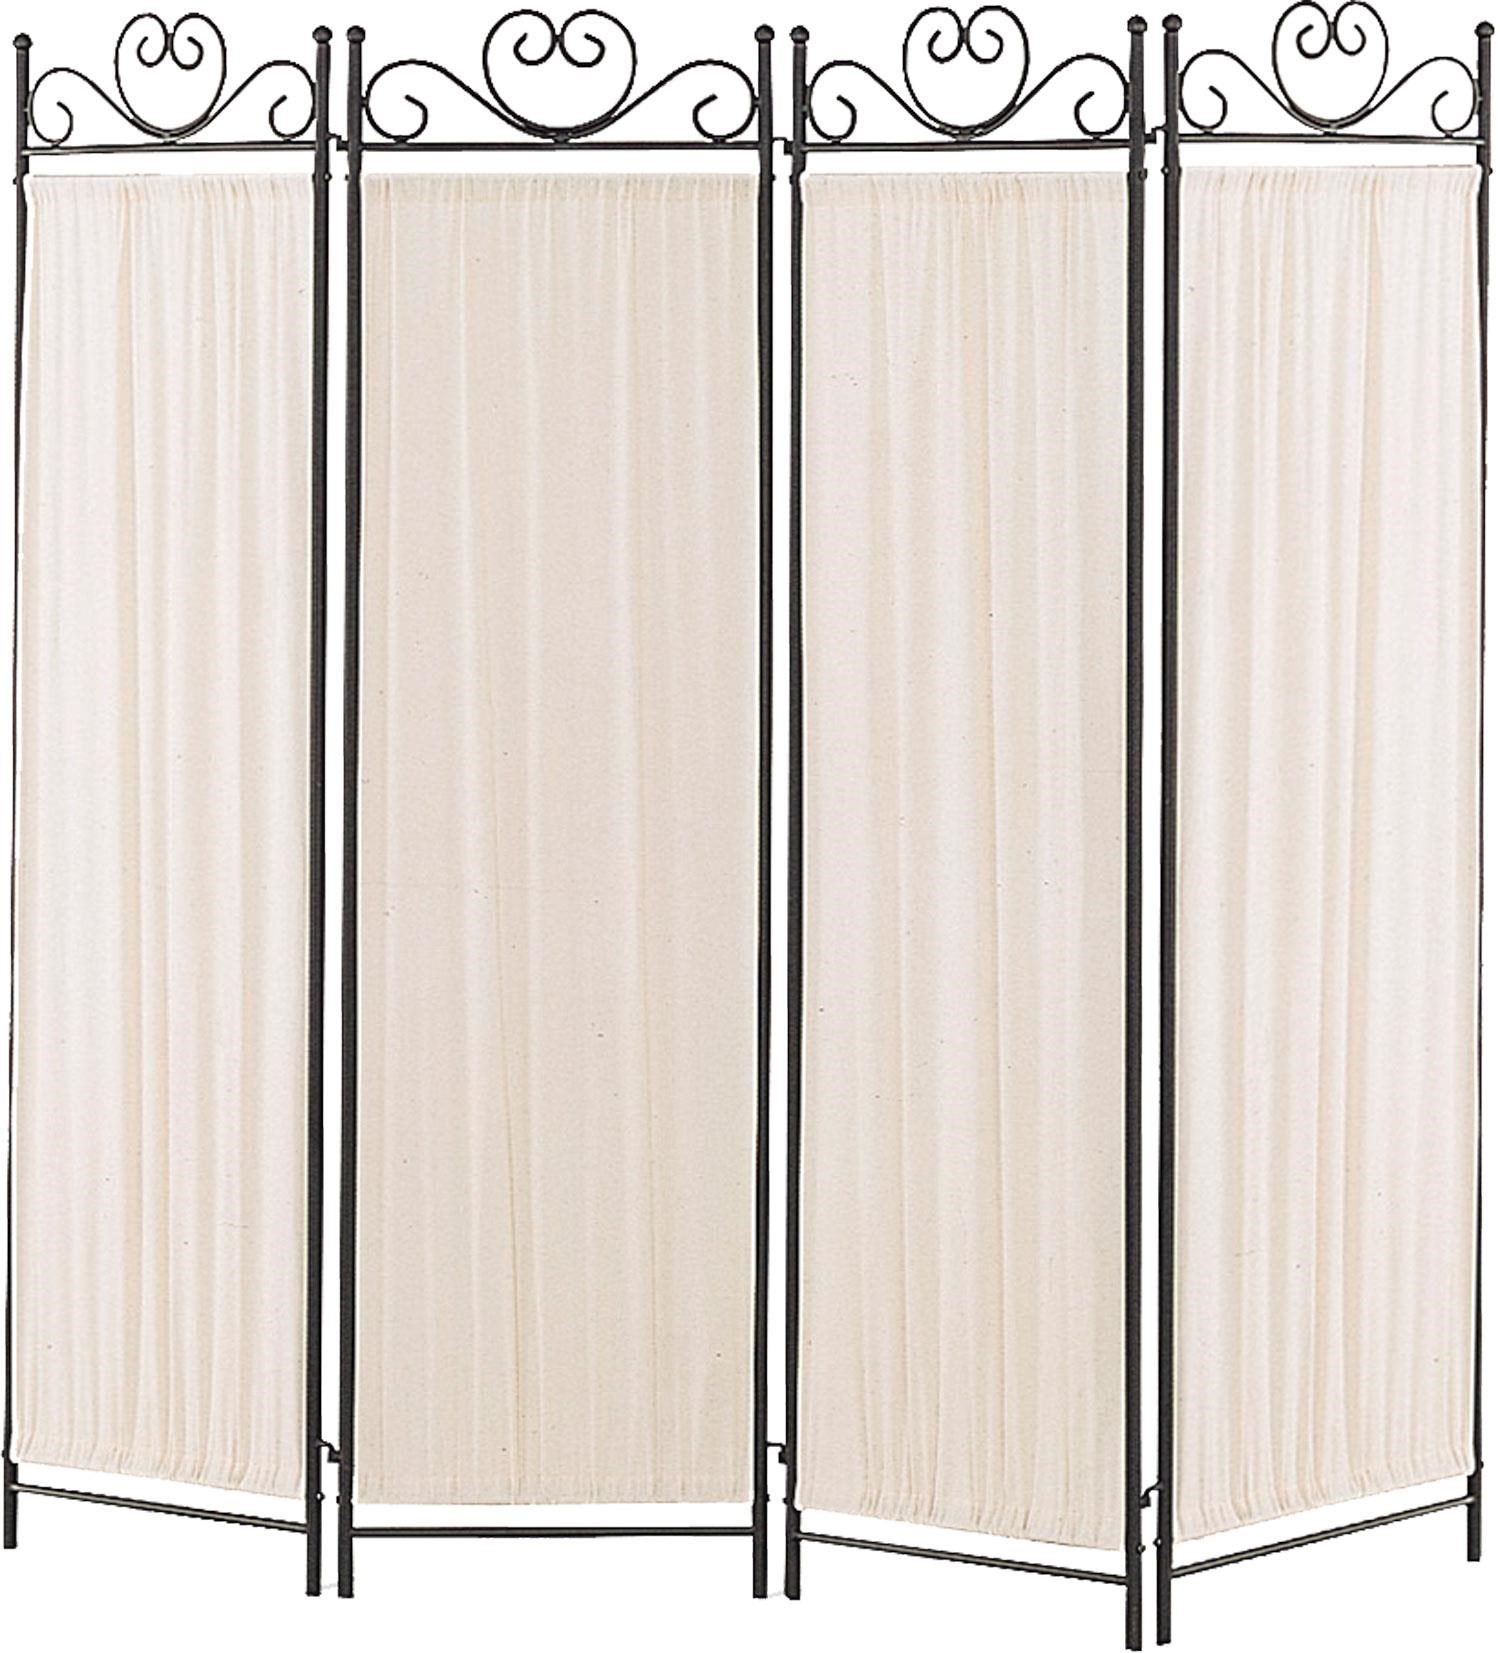 Standard Furniture Birmingham Al By Coaster Folding Screens Four Panel  Screen With Metal Frame